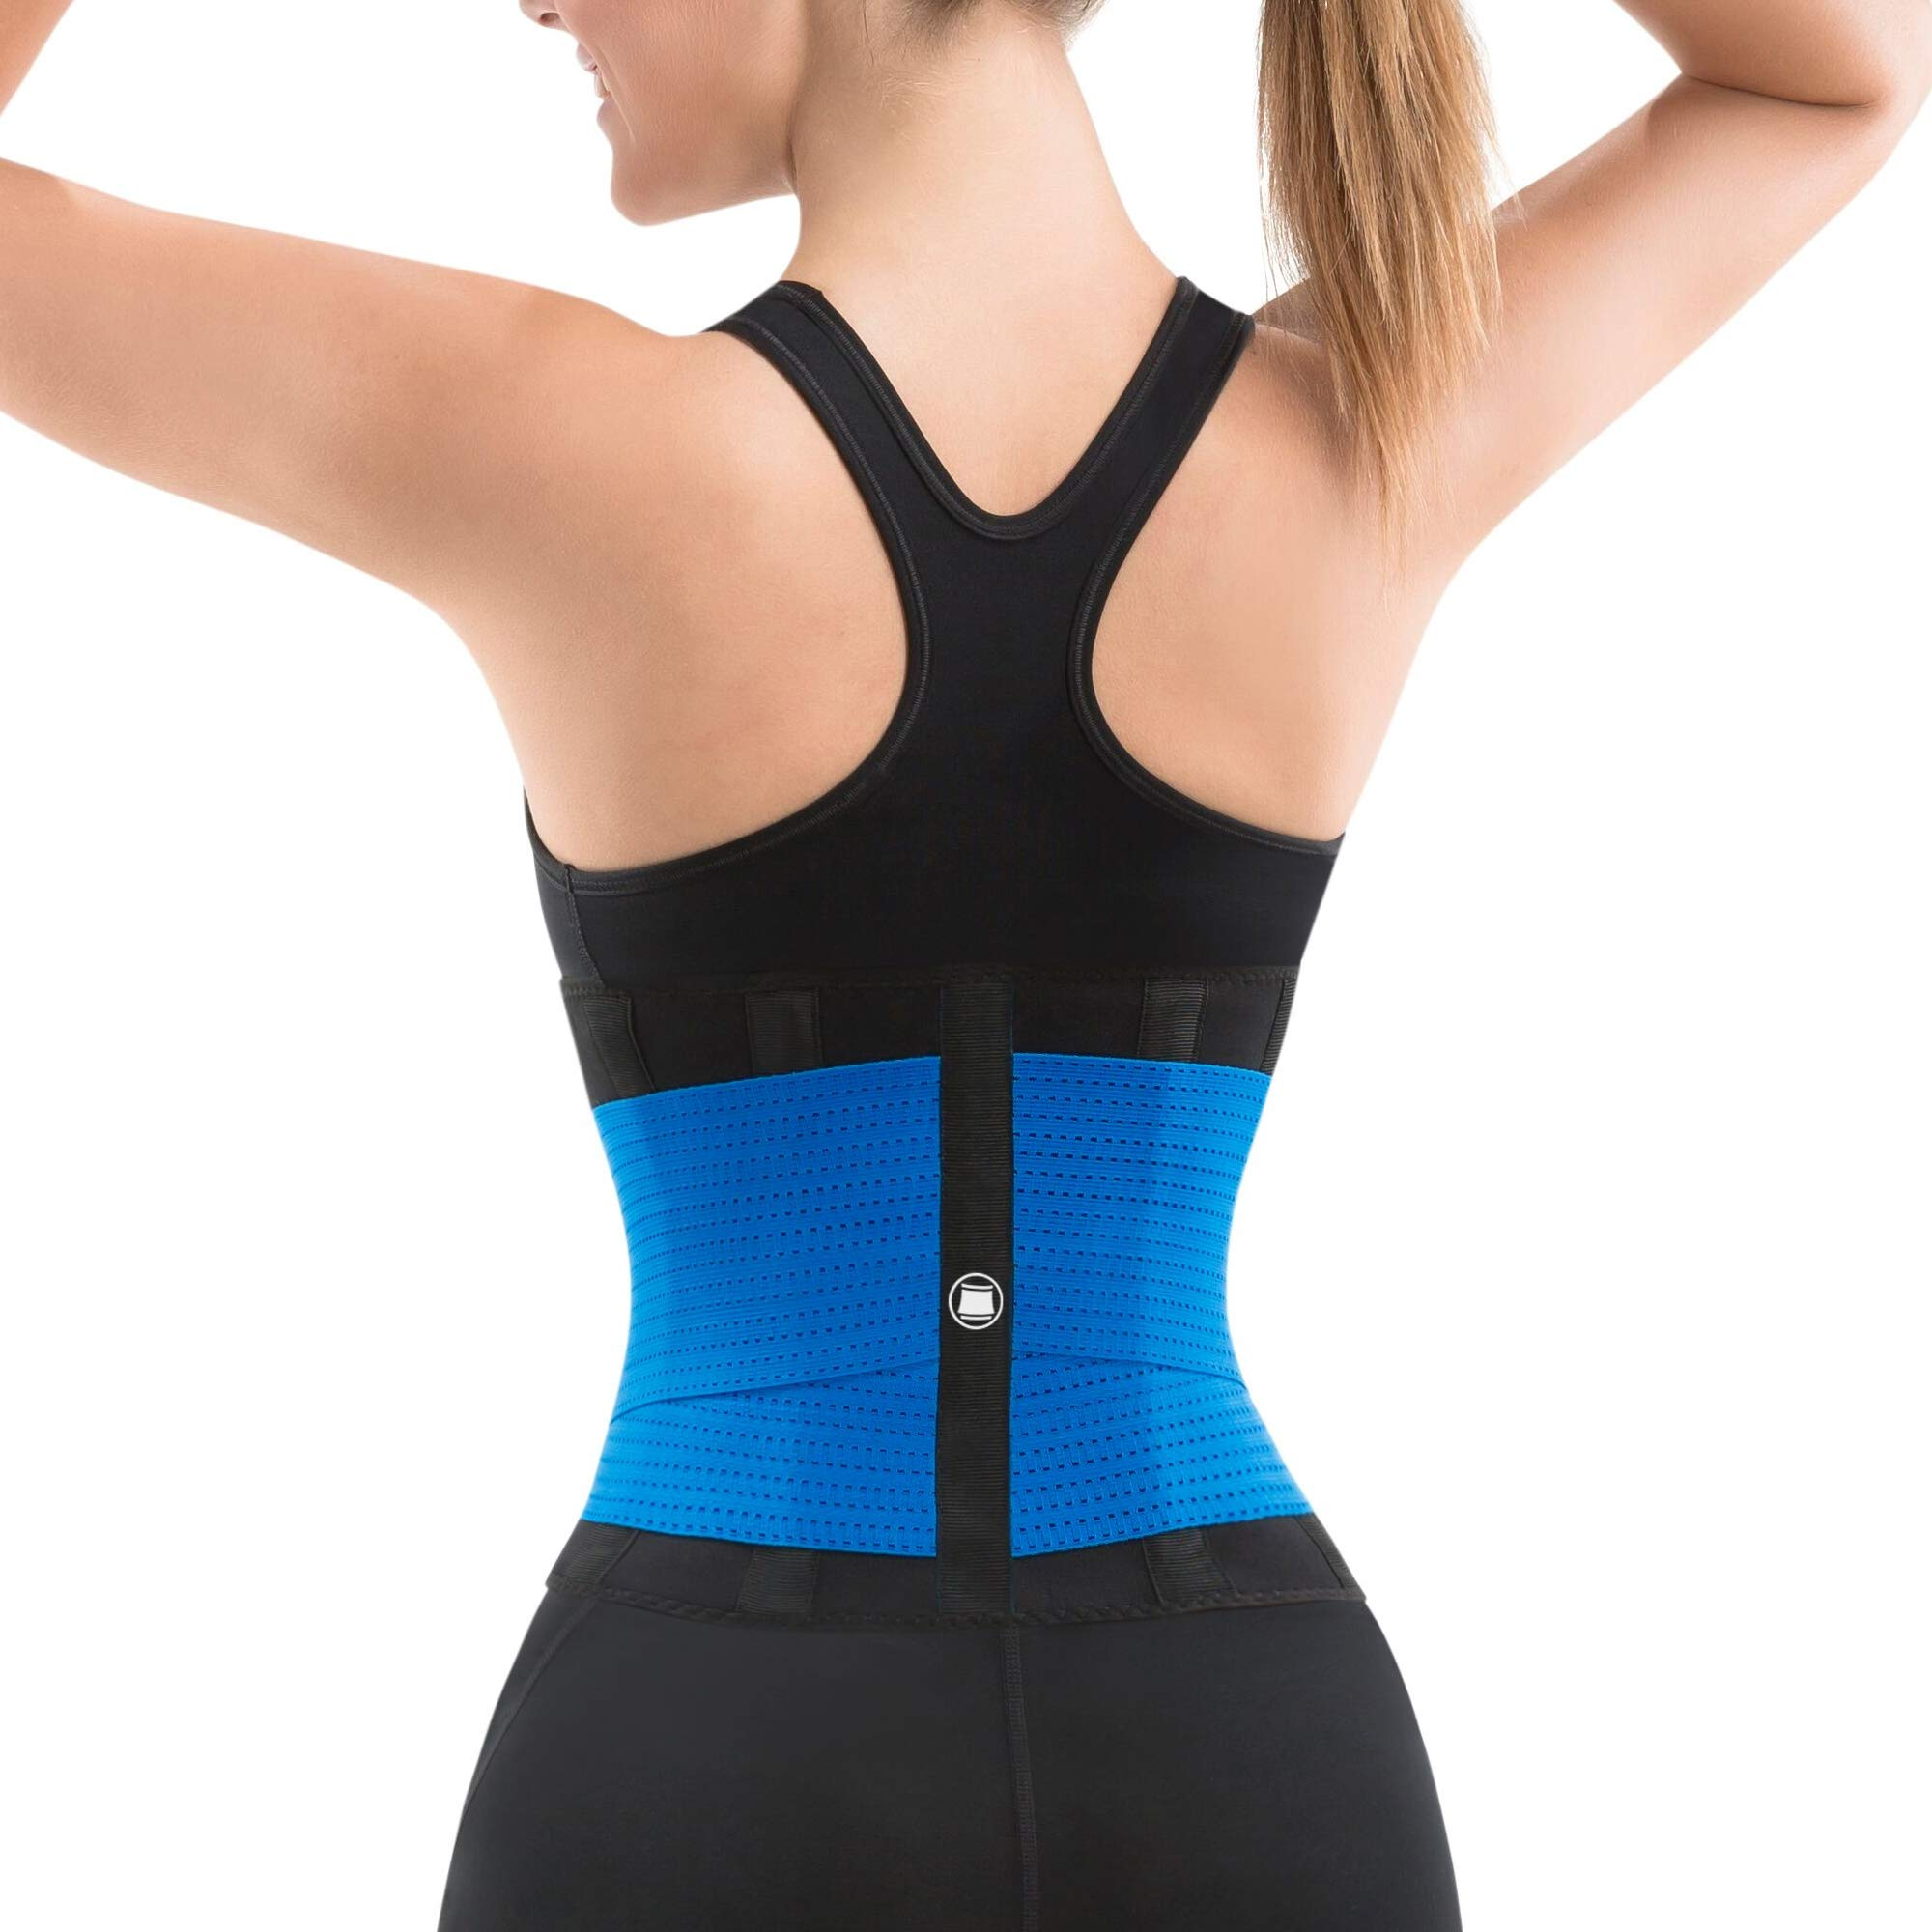 Slim Abs Waist Trainer Sweat Belt with Slimming Cream - Waist Trimmer for Women and Thermogenic Workout Gel (Blue, S/M) by Slim Abs Trilay (Image #3)